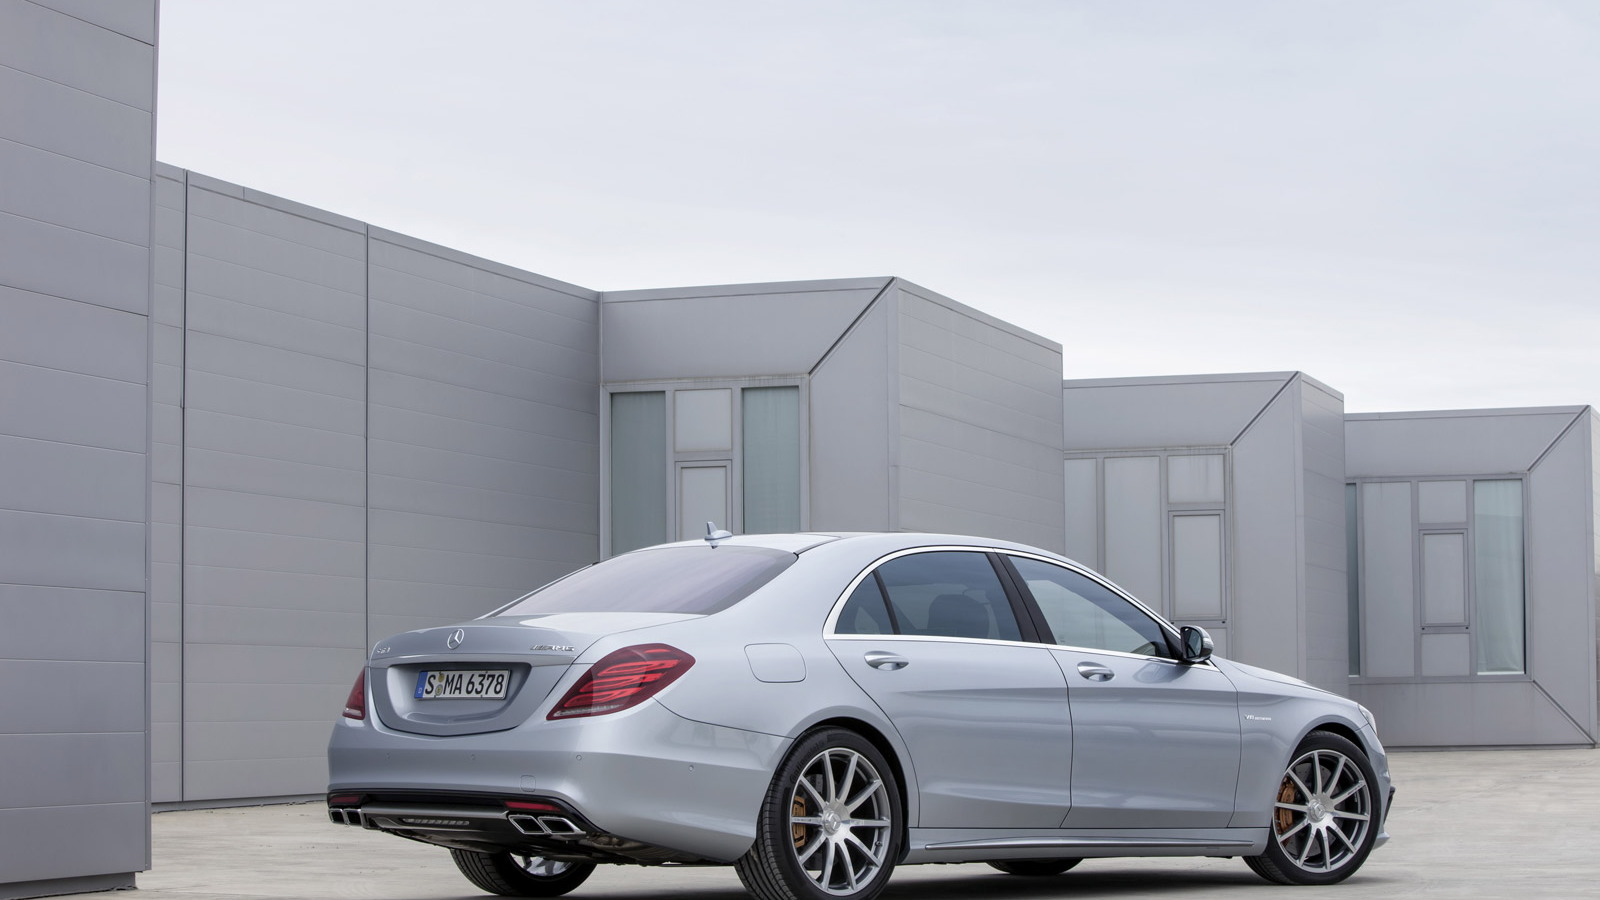 2014 Mercedes-Benz S63 AMG 4MATIC